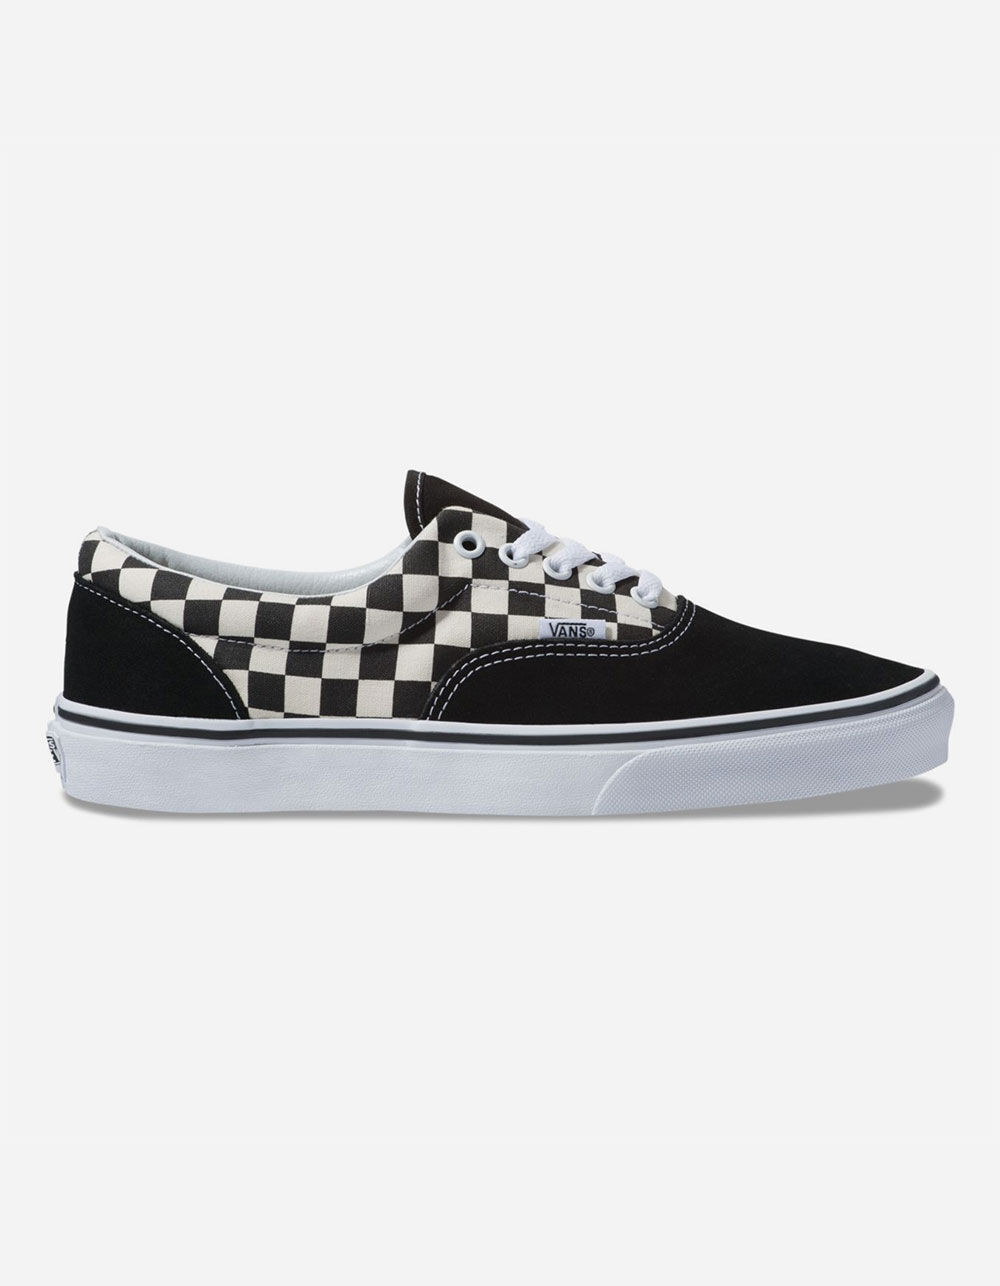 VANS Primary Check Era Black & White Shoes